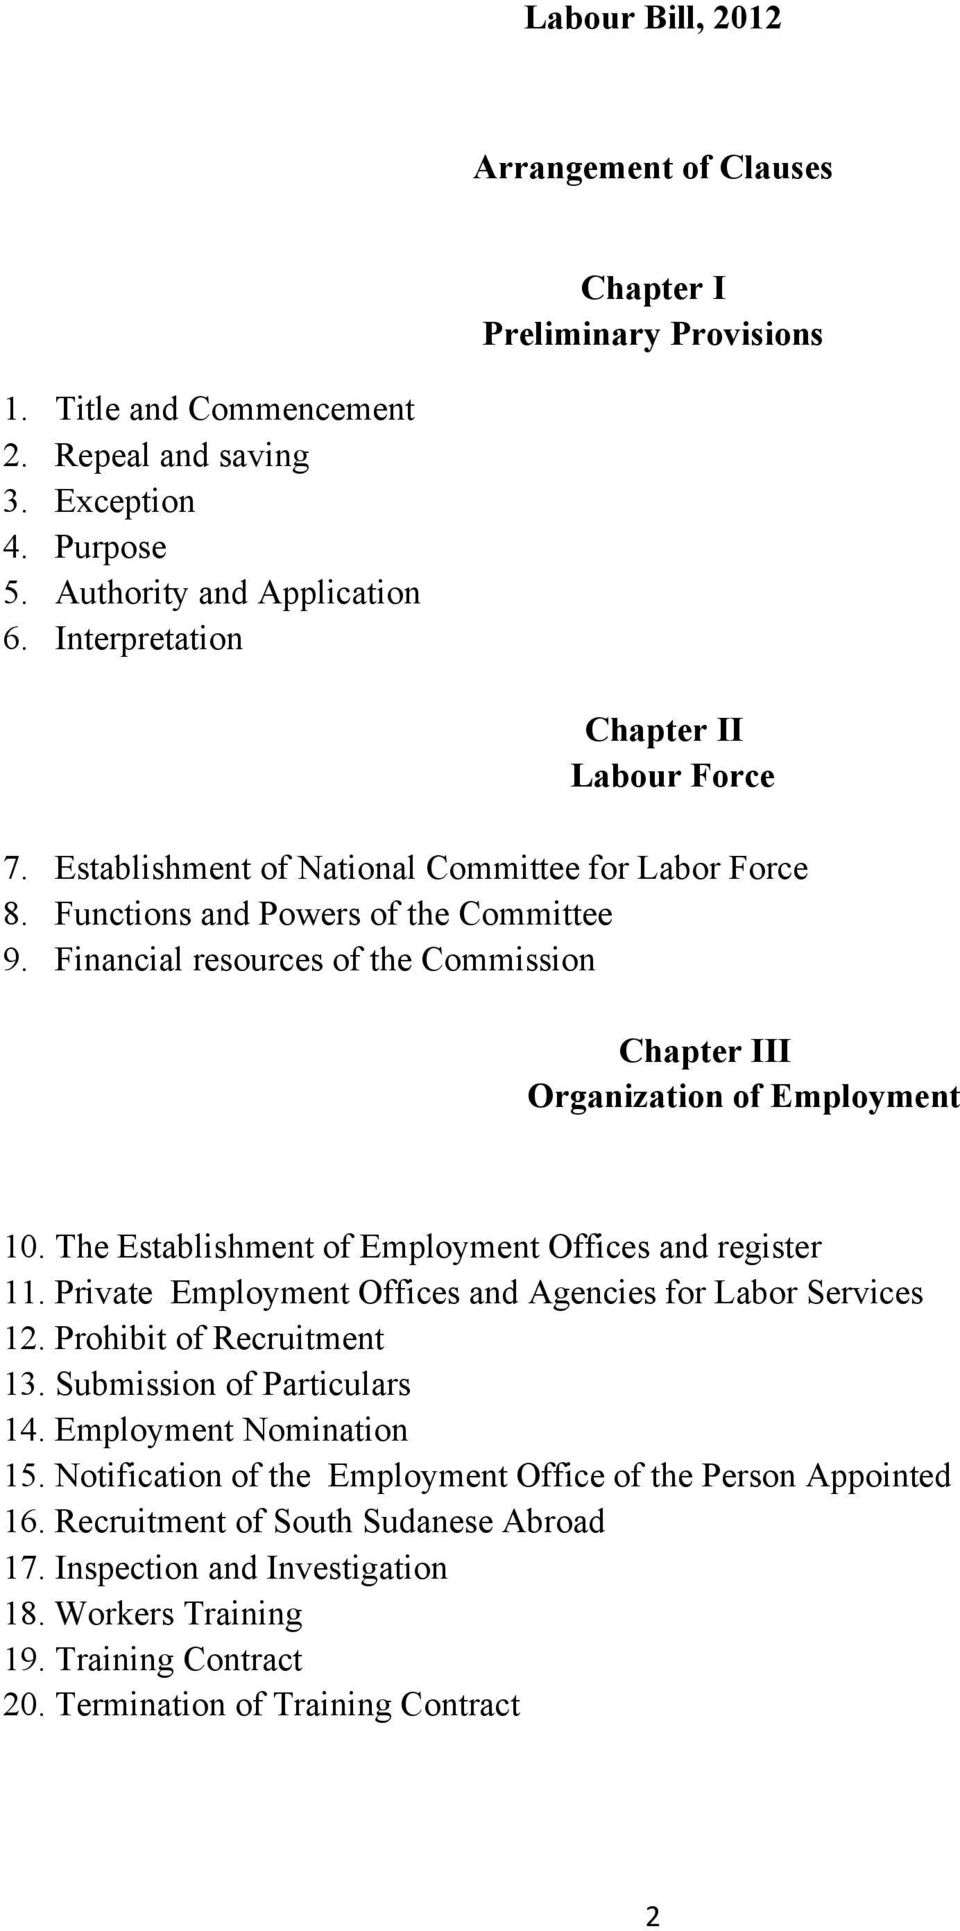 Financial resources of the Commission Chapter III Organization of Employment 10. The Establishment of Employment Offices and register 11. Private Employment Offices and Agencies for Labor Services 12.